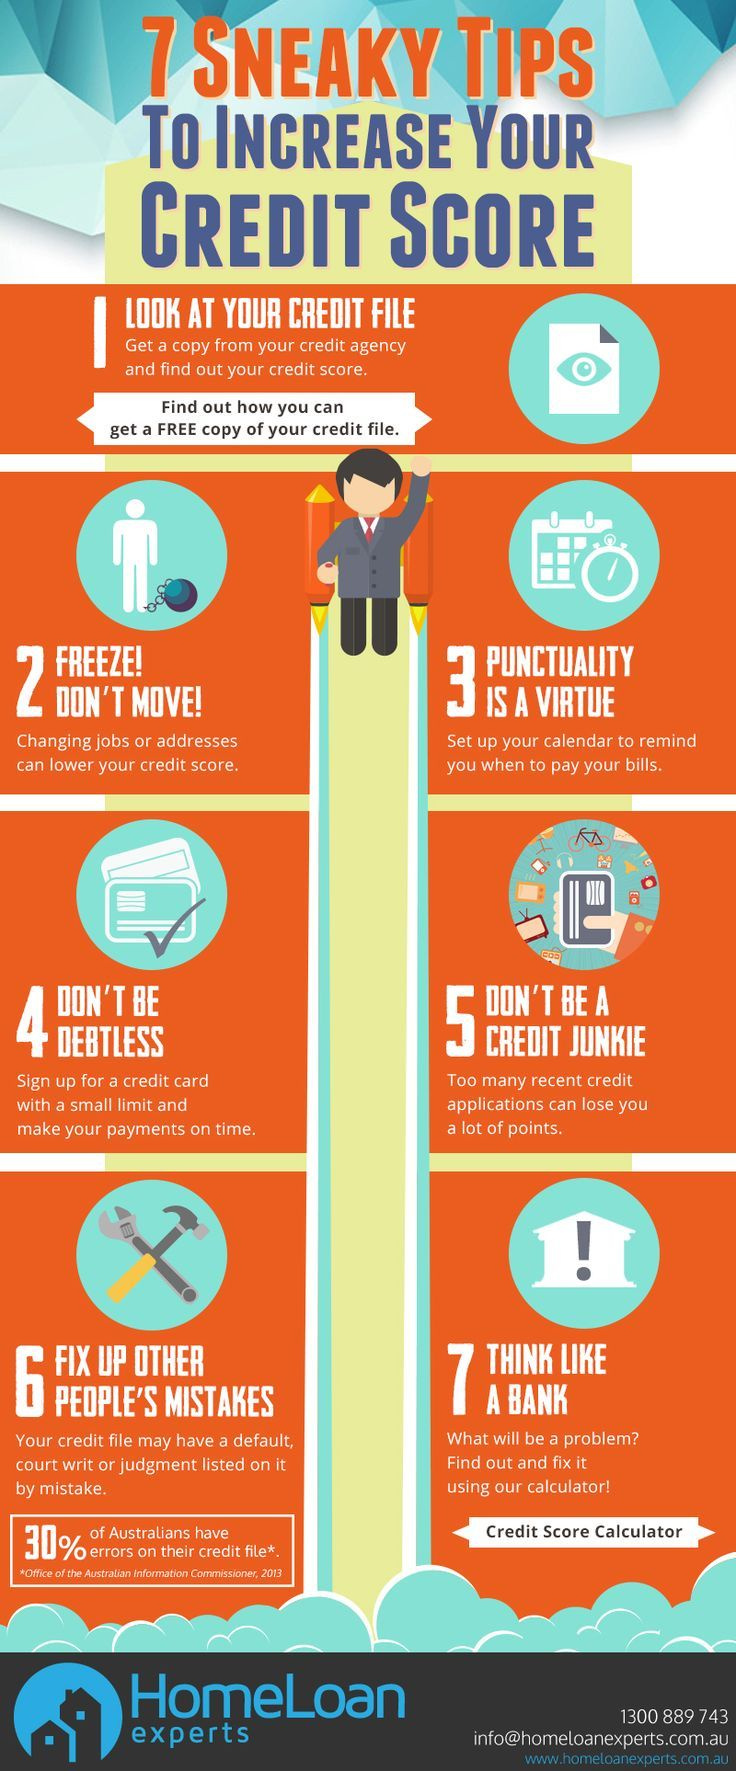 A good credit score is essential to getting your home loan approved but how do you increase your score? This infographic shows 7 #tips to increasing a #creditscore. https://www.homeloanexperts.com.au/blog/home_loan_articles/increase-your-credit-score/ building credit, credit score